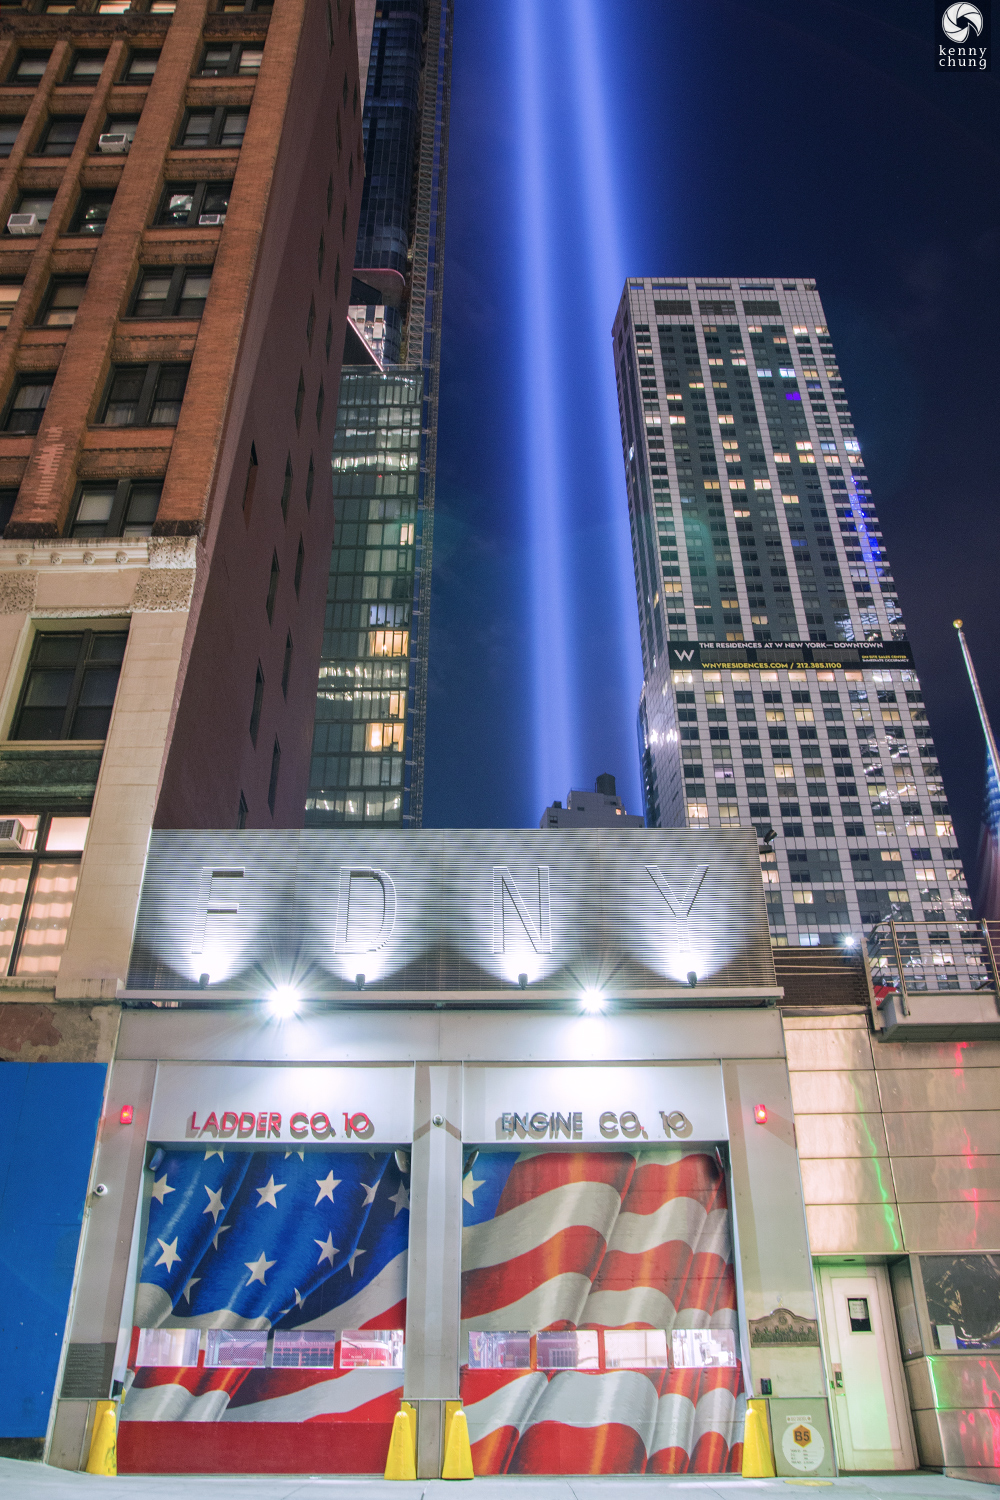 FDNY Ten House (Ladder Co 10/Engine Co 10) during Tribute in Light 2019